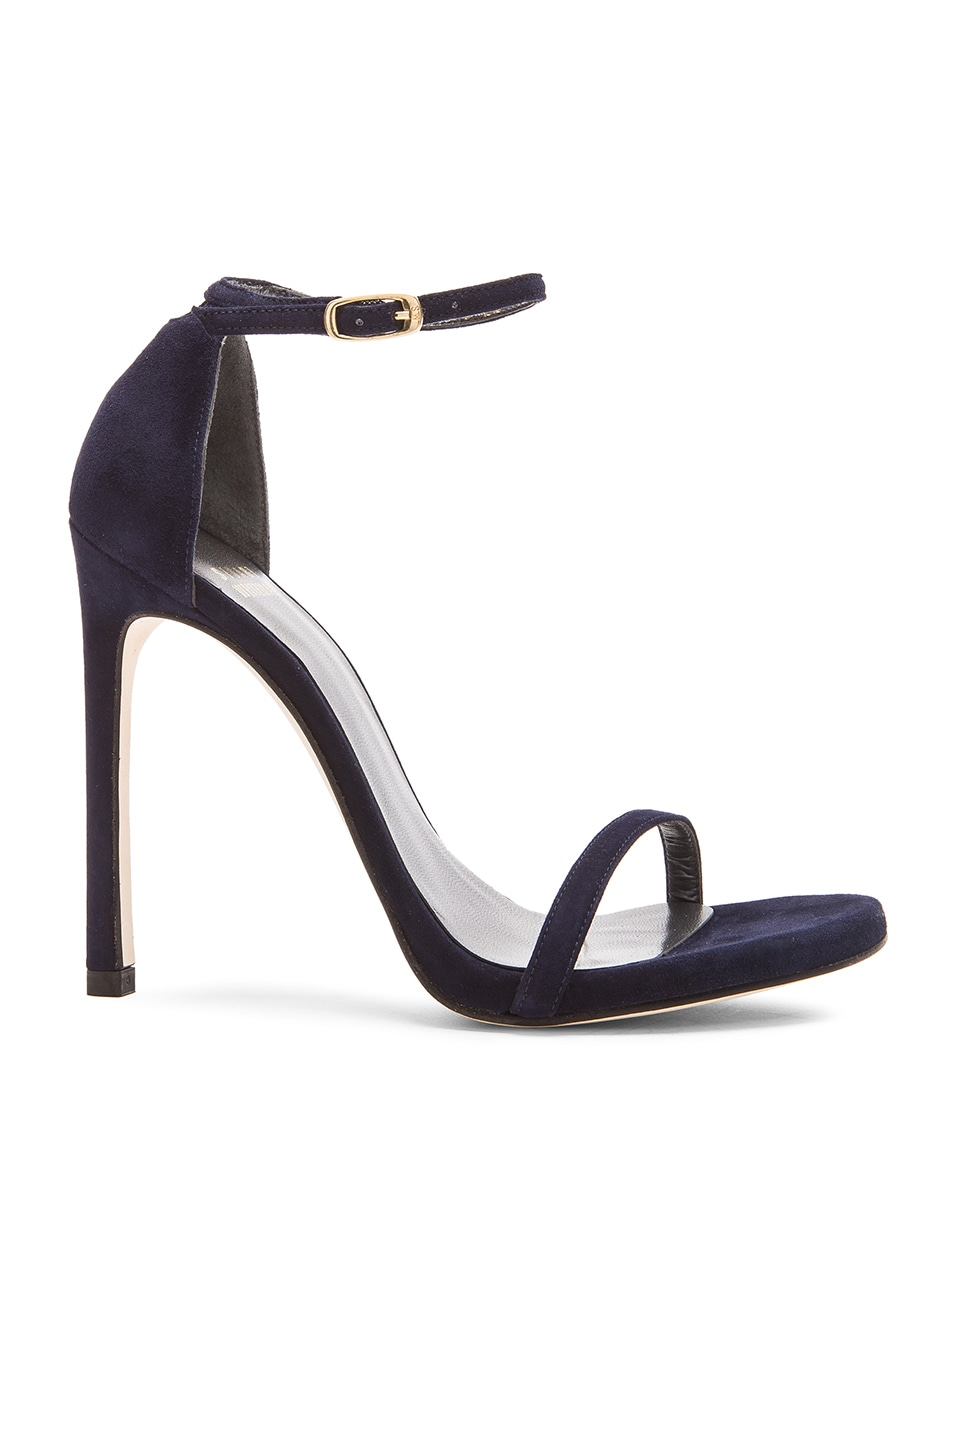 Image 1 of Stuart Weitzman Suede Nudist Heels in Nice Blue Suede